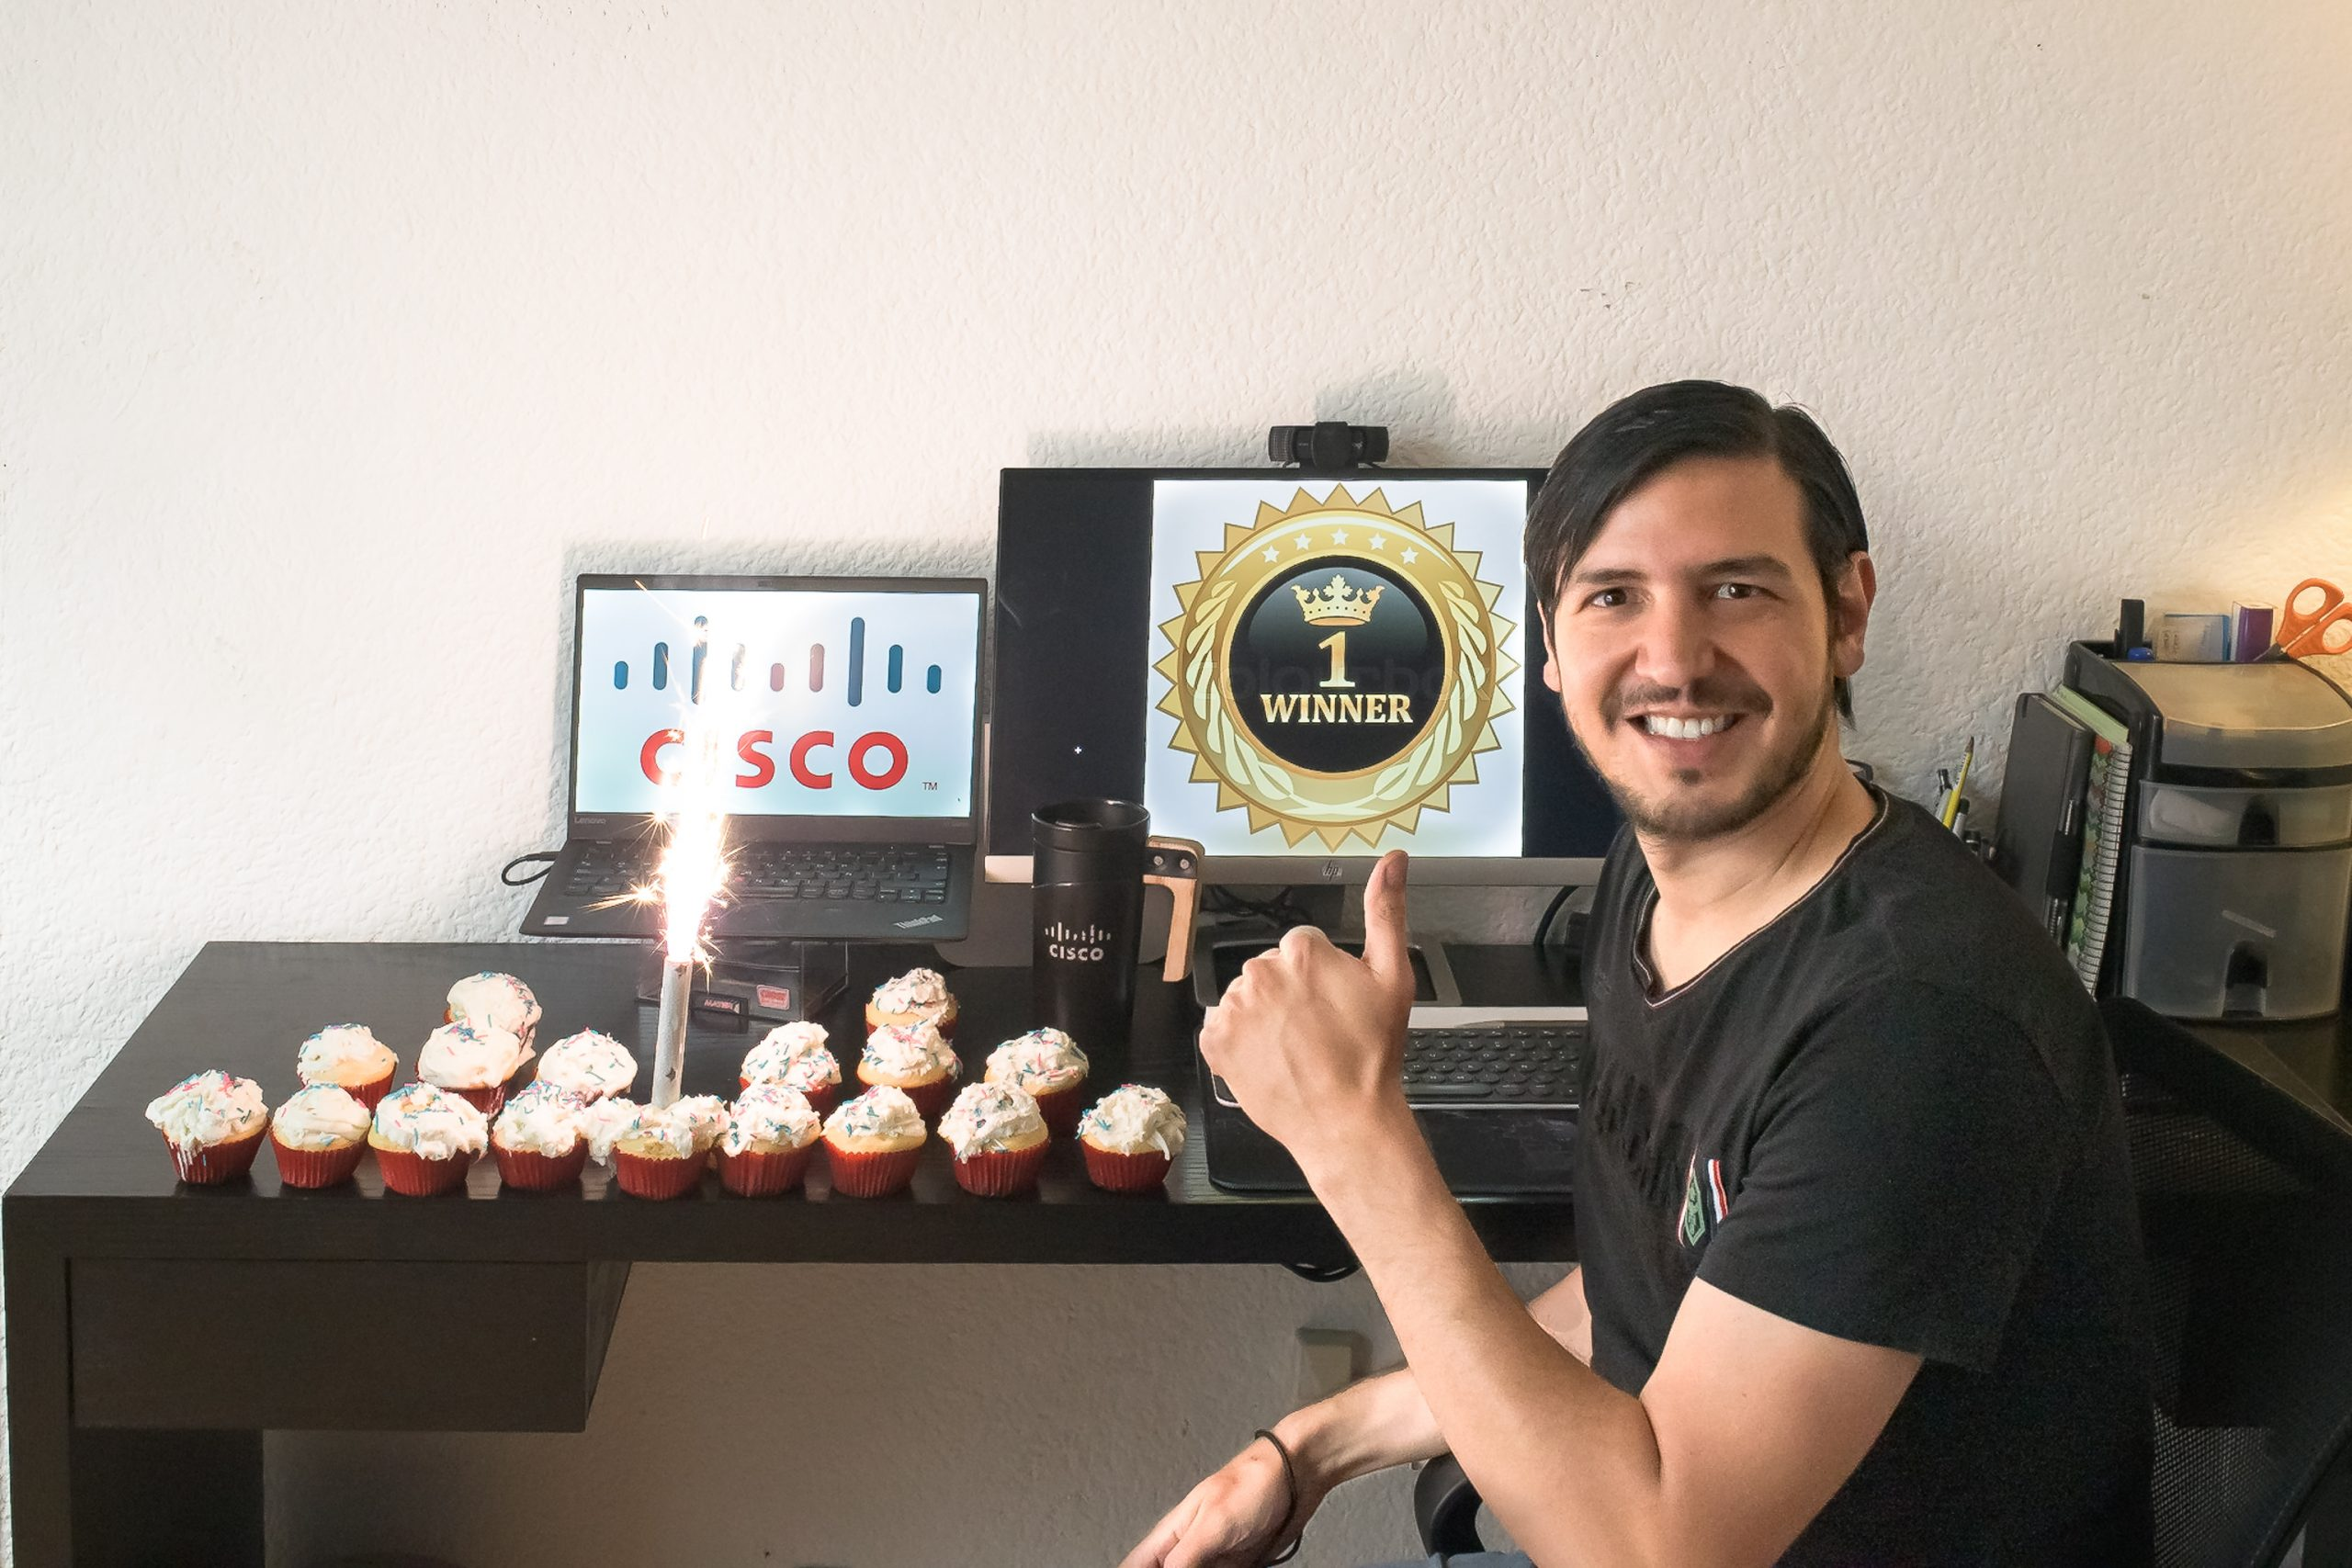 Javier sits at his desk with cupcakes in the shape of a Cisco logo and holds up his finger as #1.